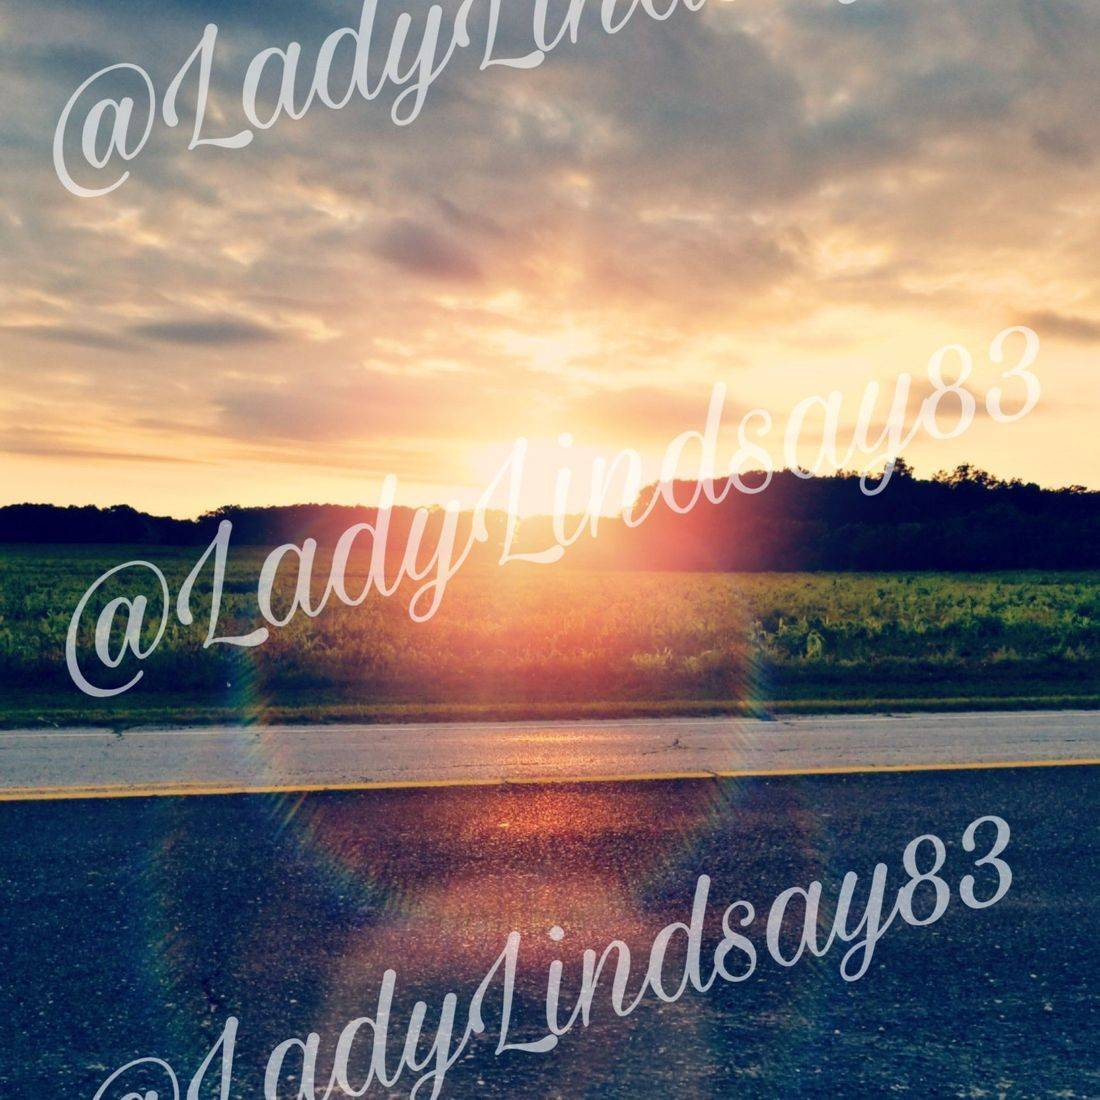 Summer Highway, Wallpaper, Photography, Photog, Summer, Image, Art, Abstract Art, Outdoors, Nature, Lady Lindsay's Creations, Sunlight, Solar Flare, Travel, New Jersey